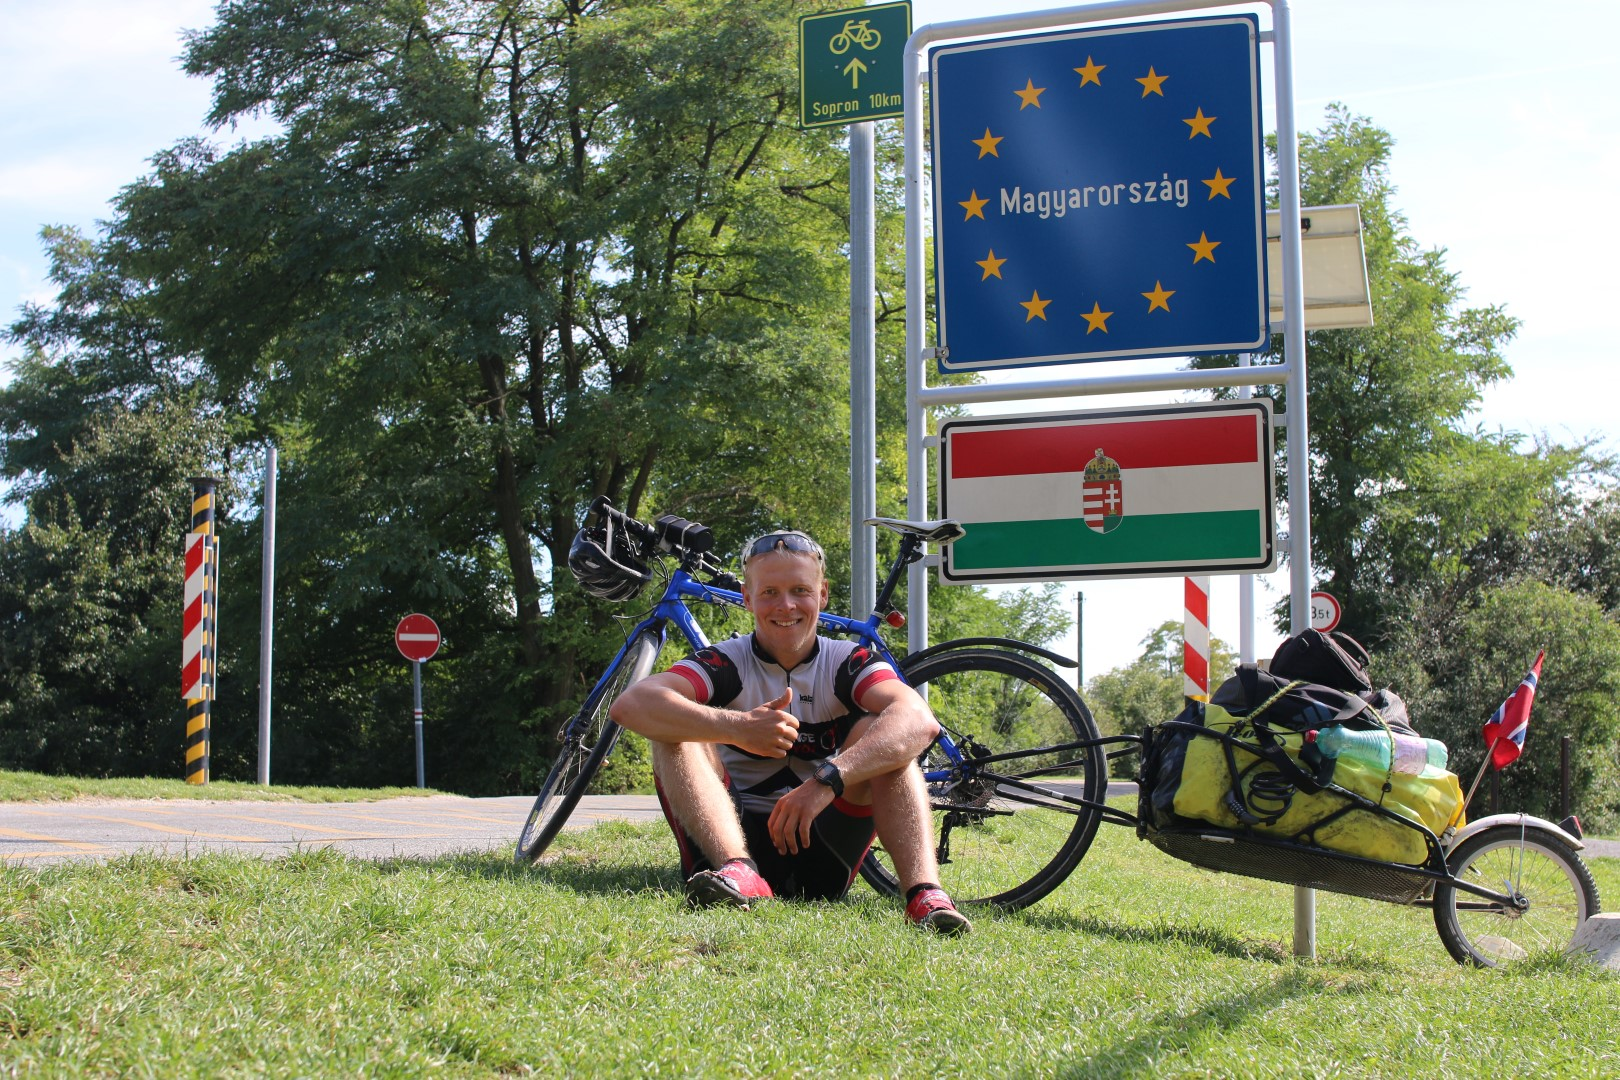 Crossing the boarder between Austria and Hungary 5 times on my way to Koszeg